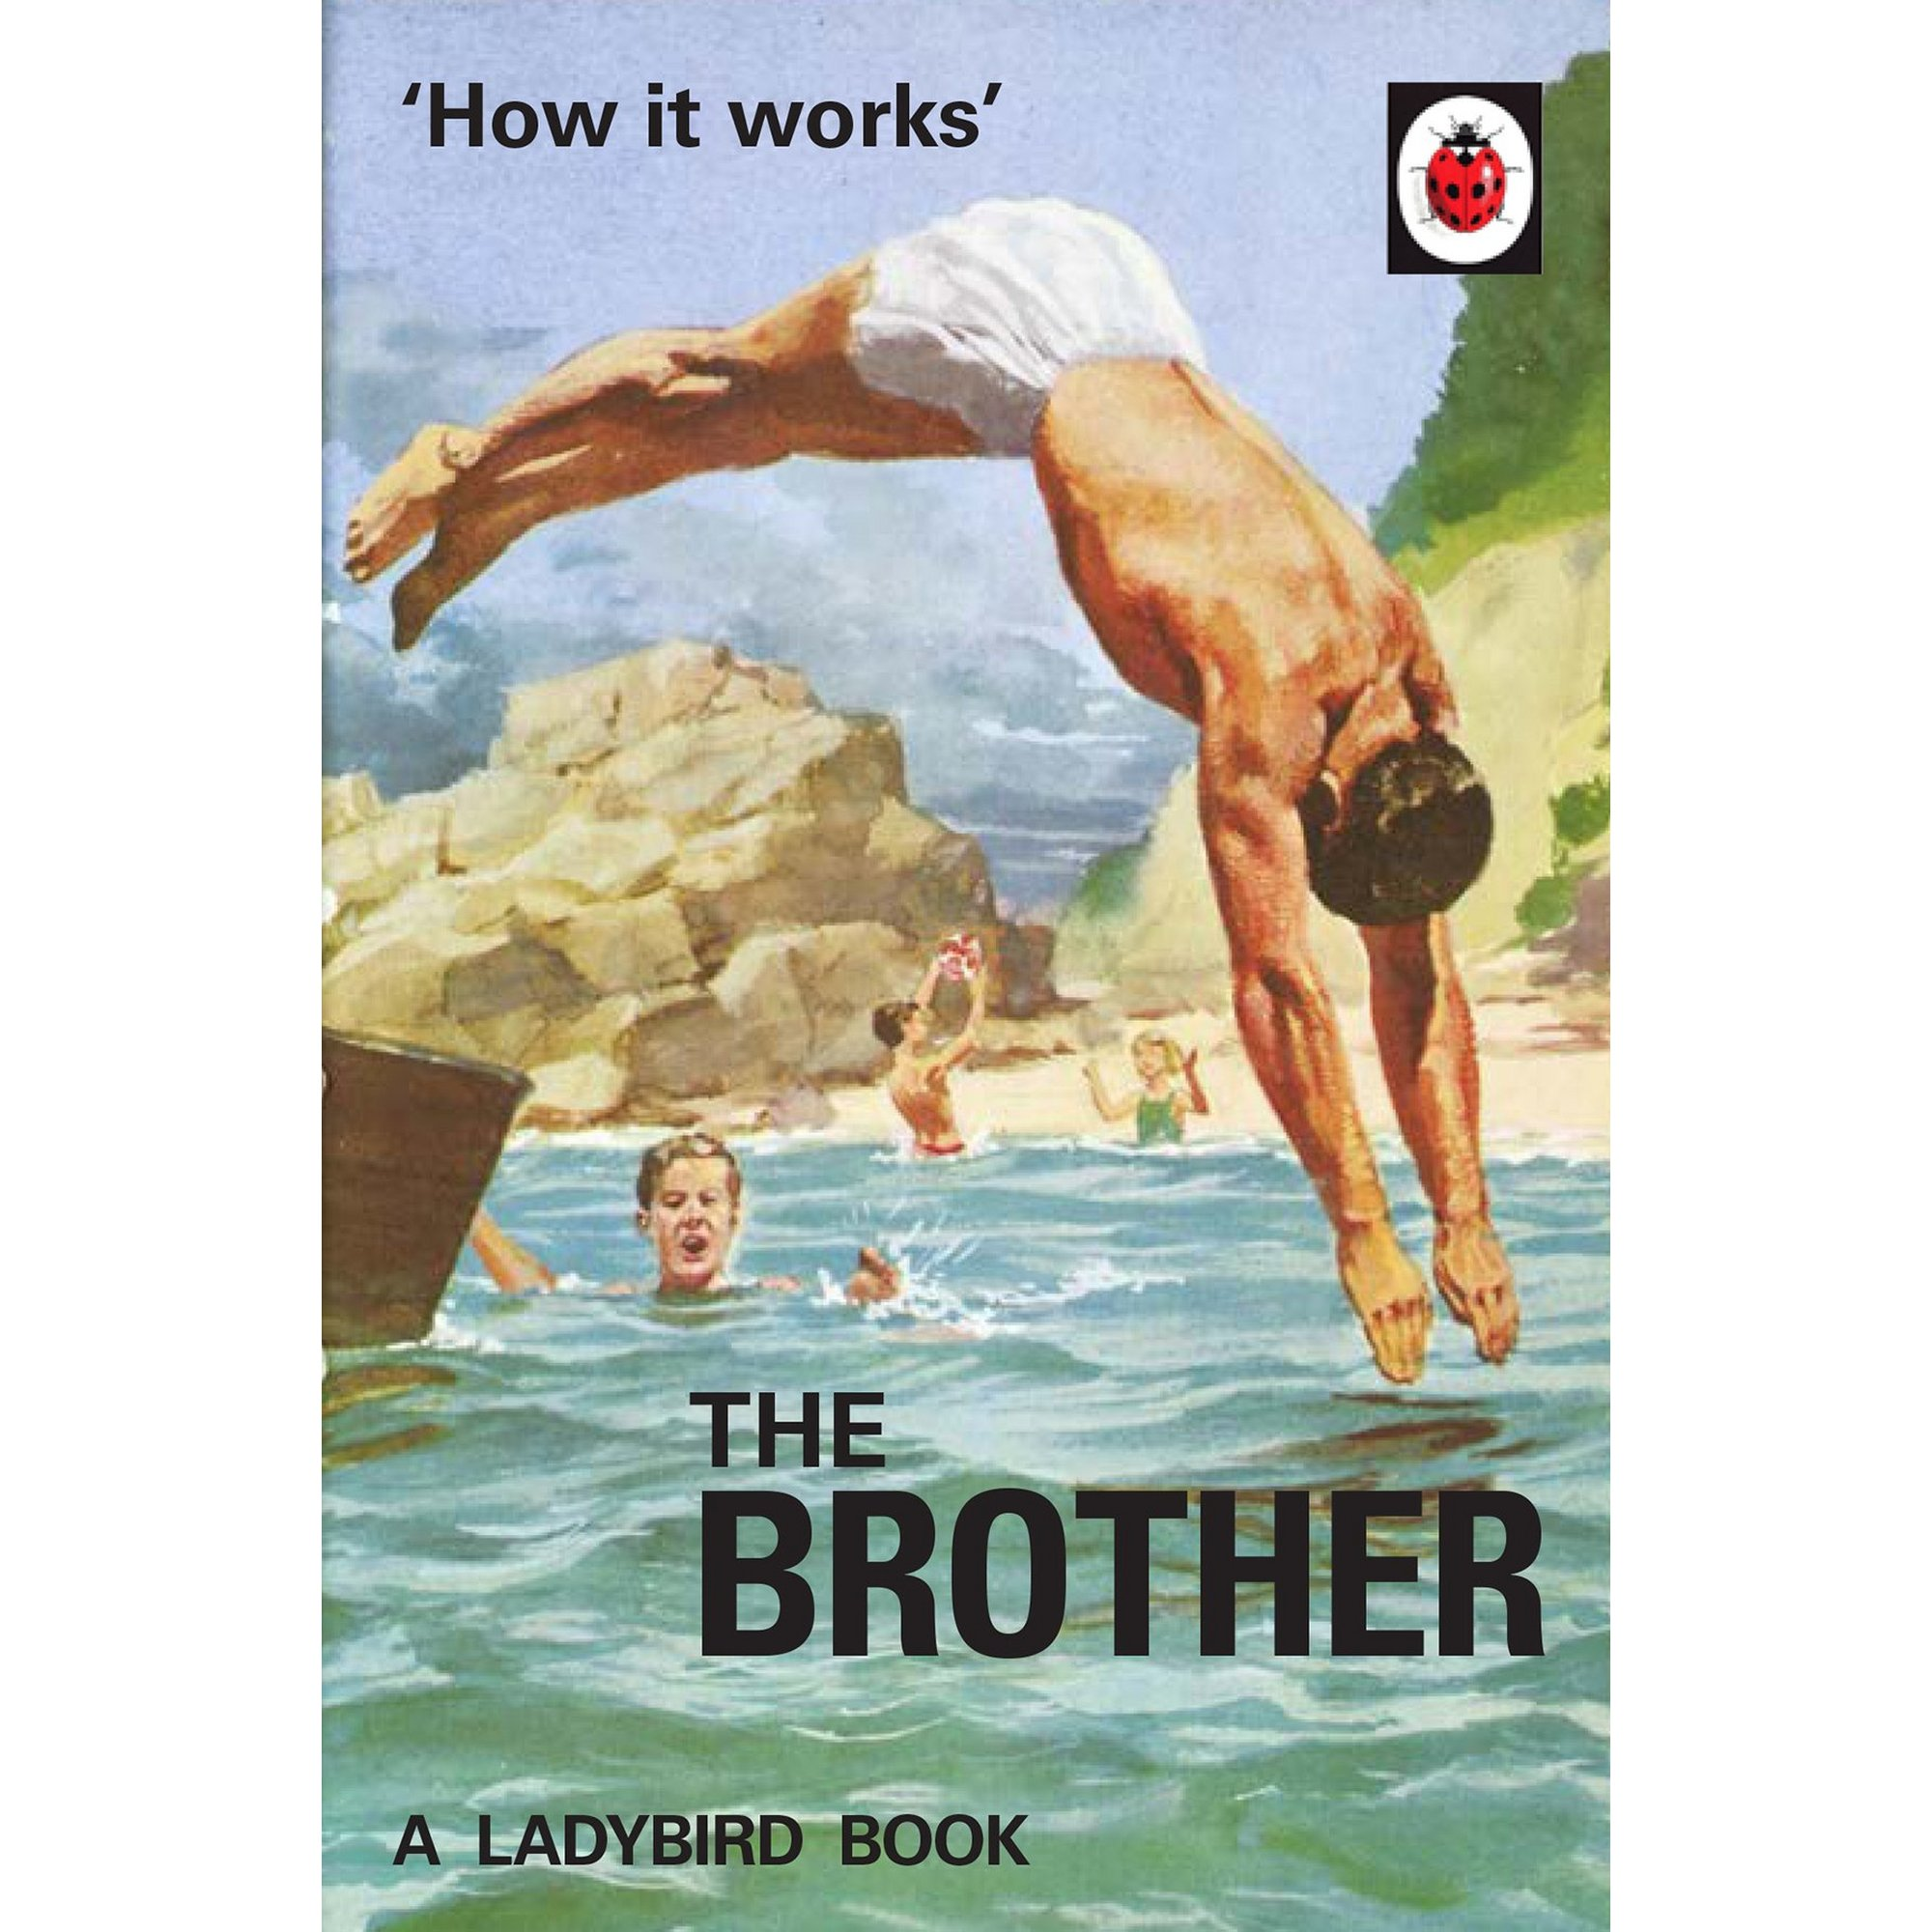 Image of The Ladybird Book of The Brother